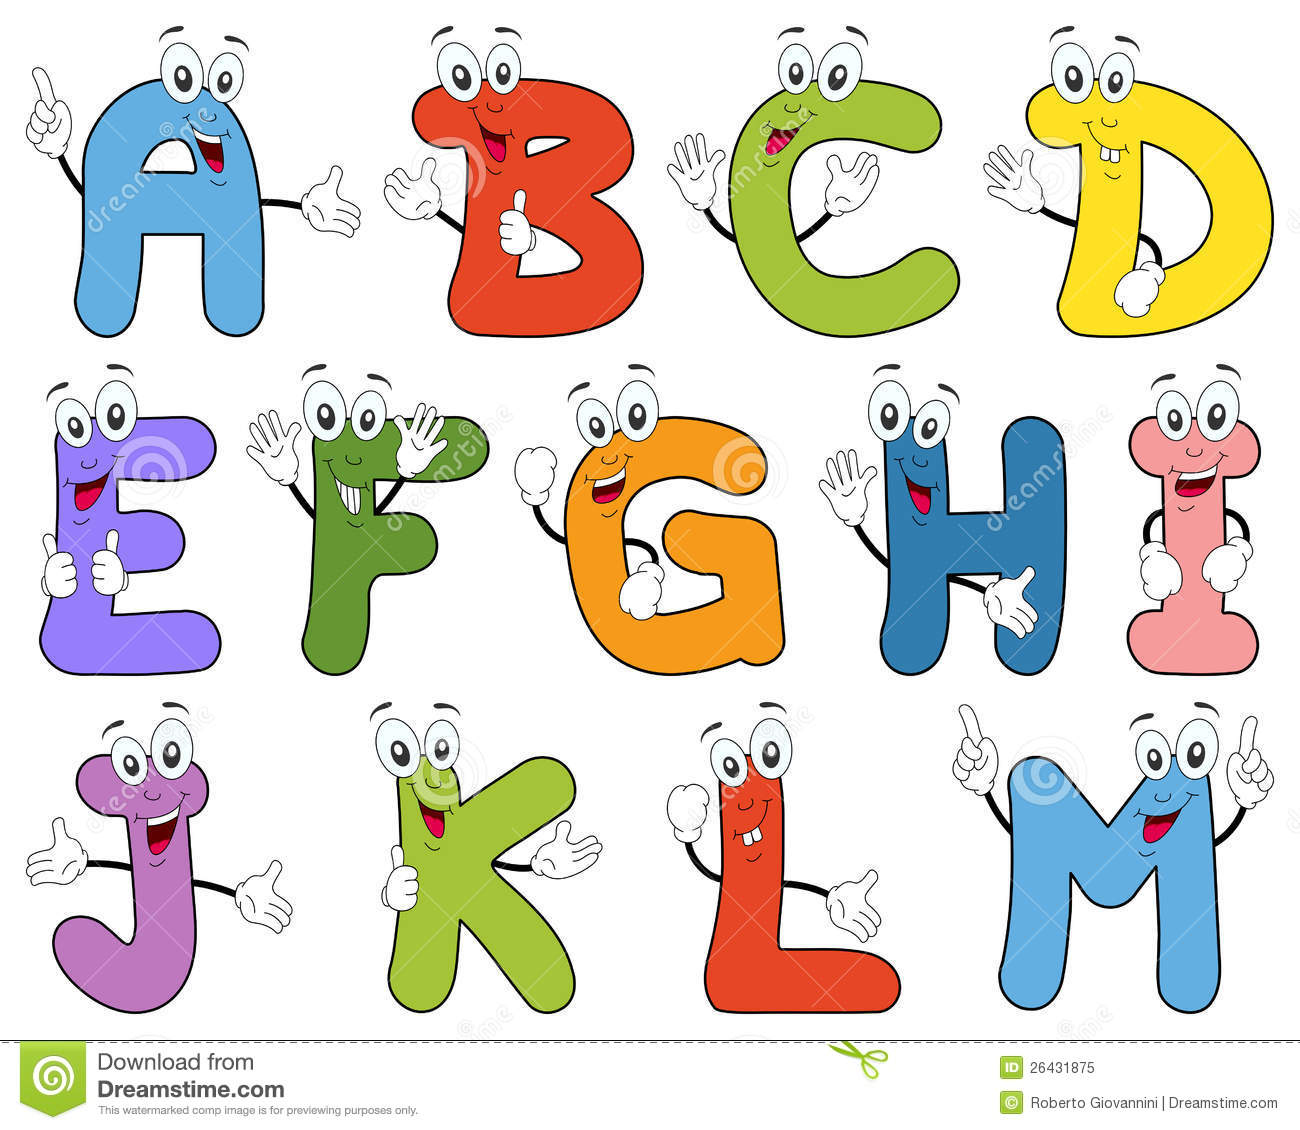 Free animated alphabet clipart png Cartoon Alphabet Characters A-M Royalty Free Stock Photo - Image ... png